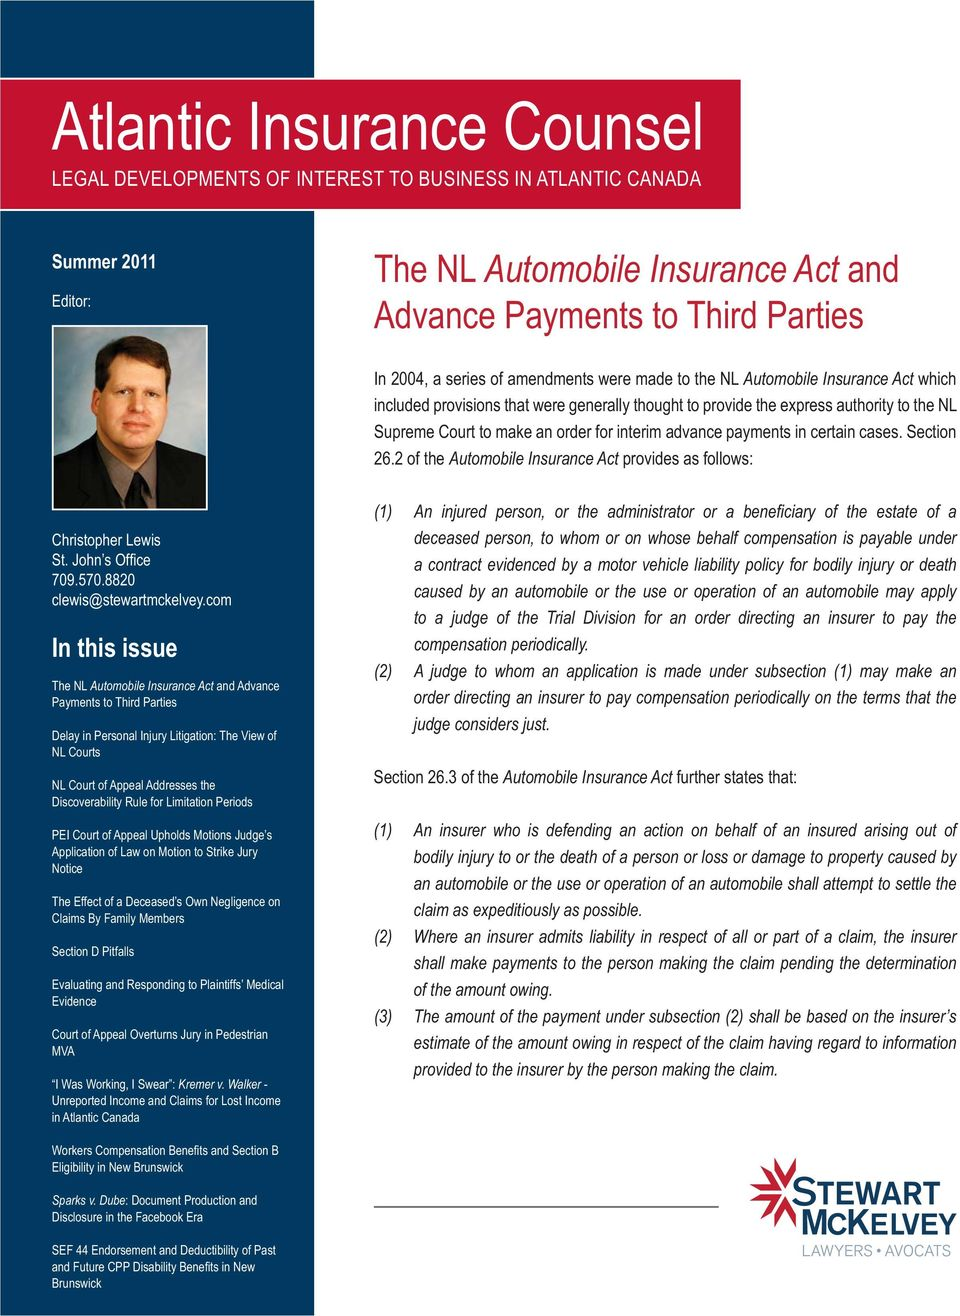 advance payments in certain cases. Section 26.2 of the Automobile Insurance Act provides as follows: Christopher Lewis 709.570.8820 clewis@stewartmckelvey.